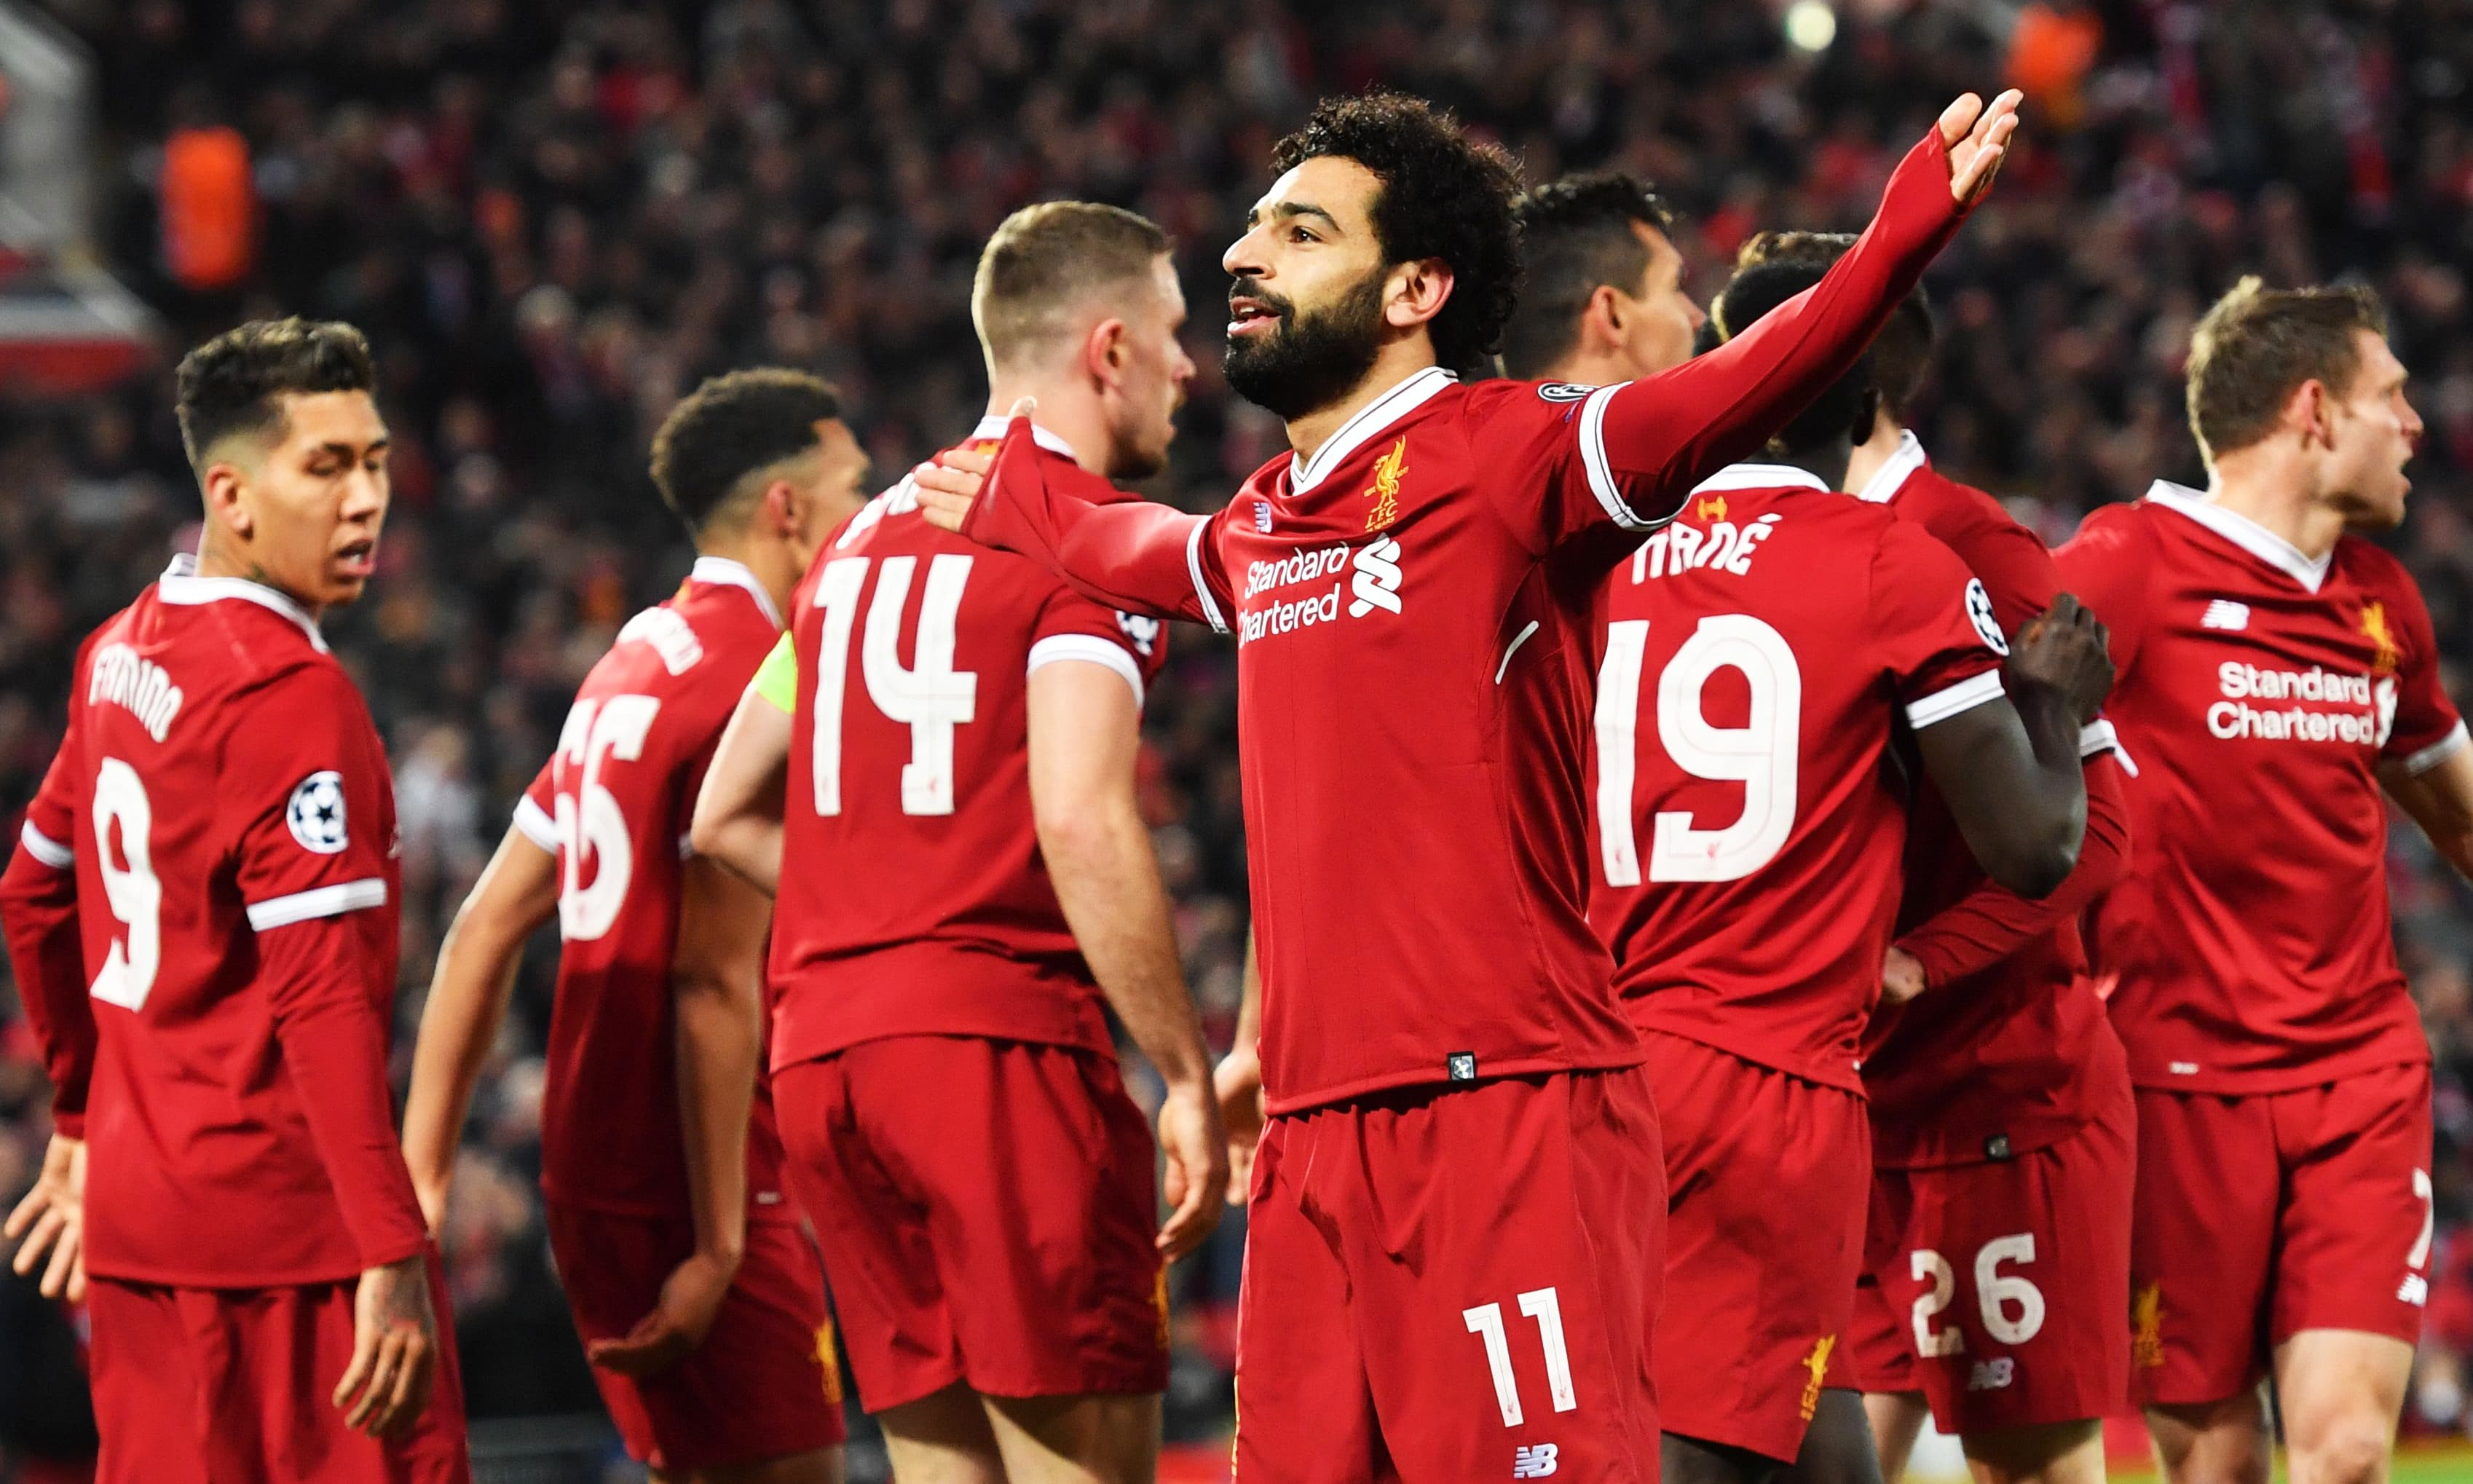 Liverpool blows away Man City in 3-0 win in CL quarterfinals